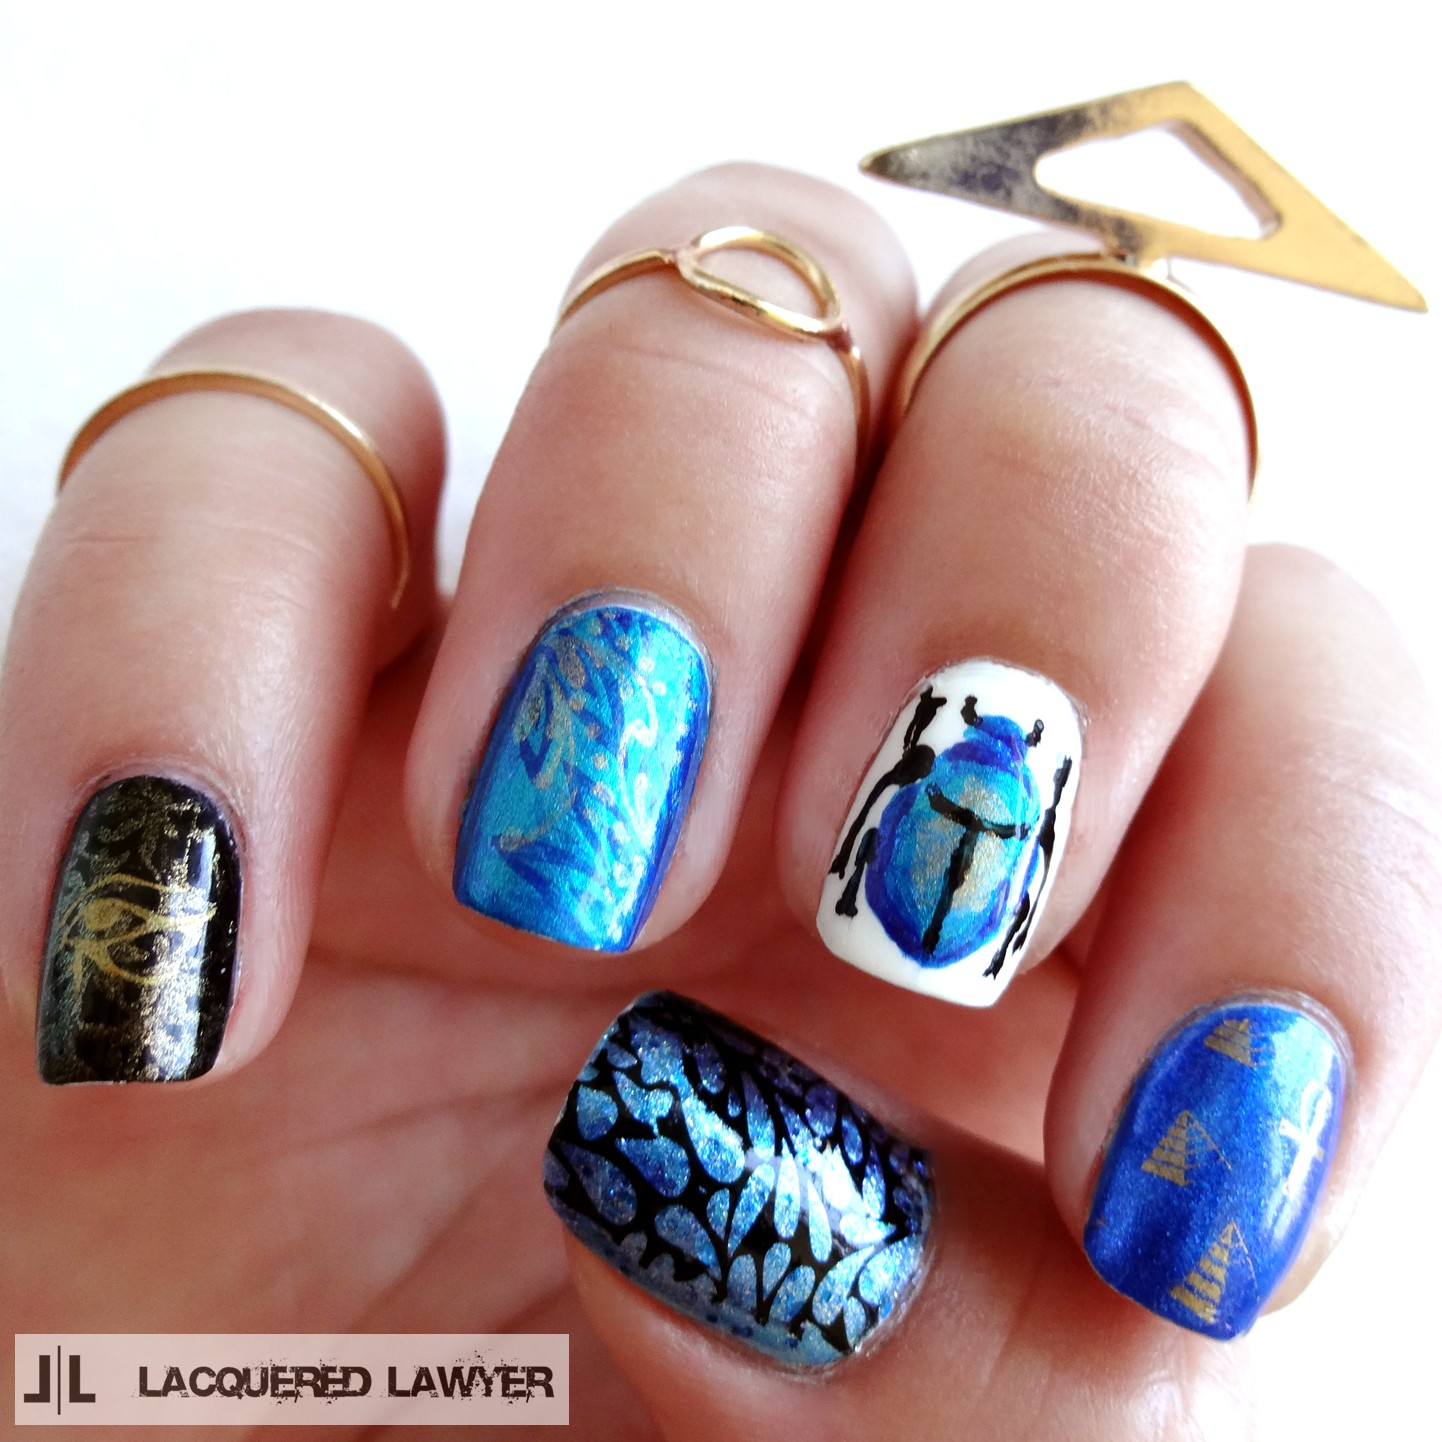 Lacquered Lawyer Nail Art Blog Iridescent Egypt